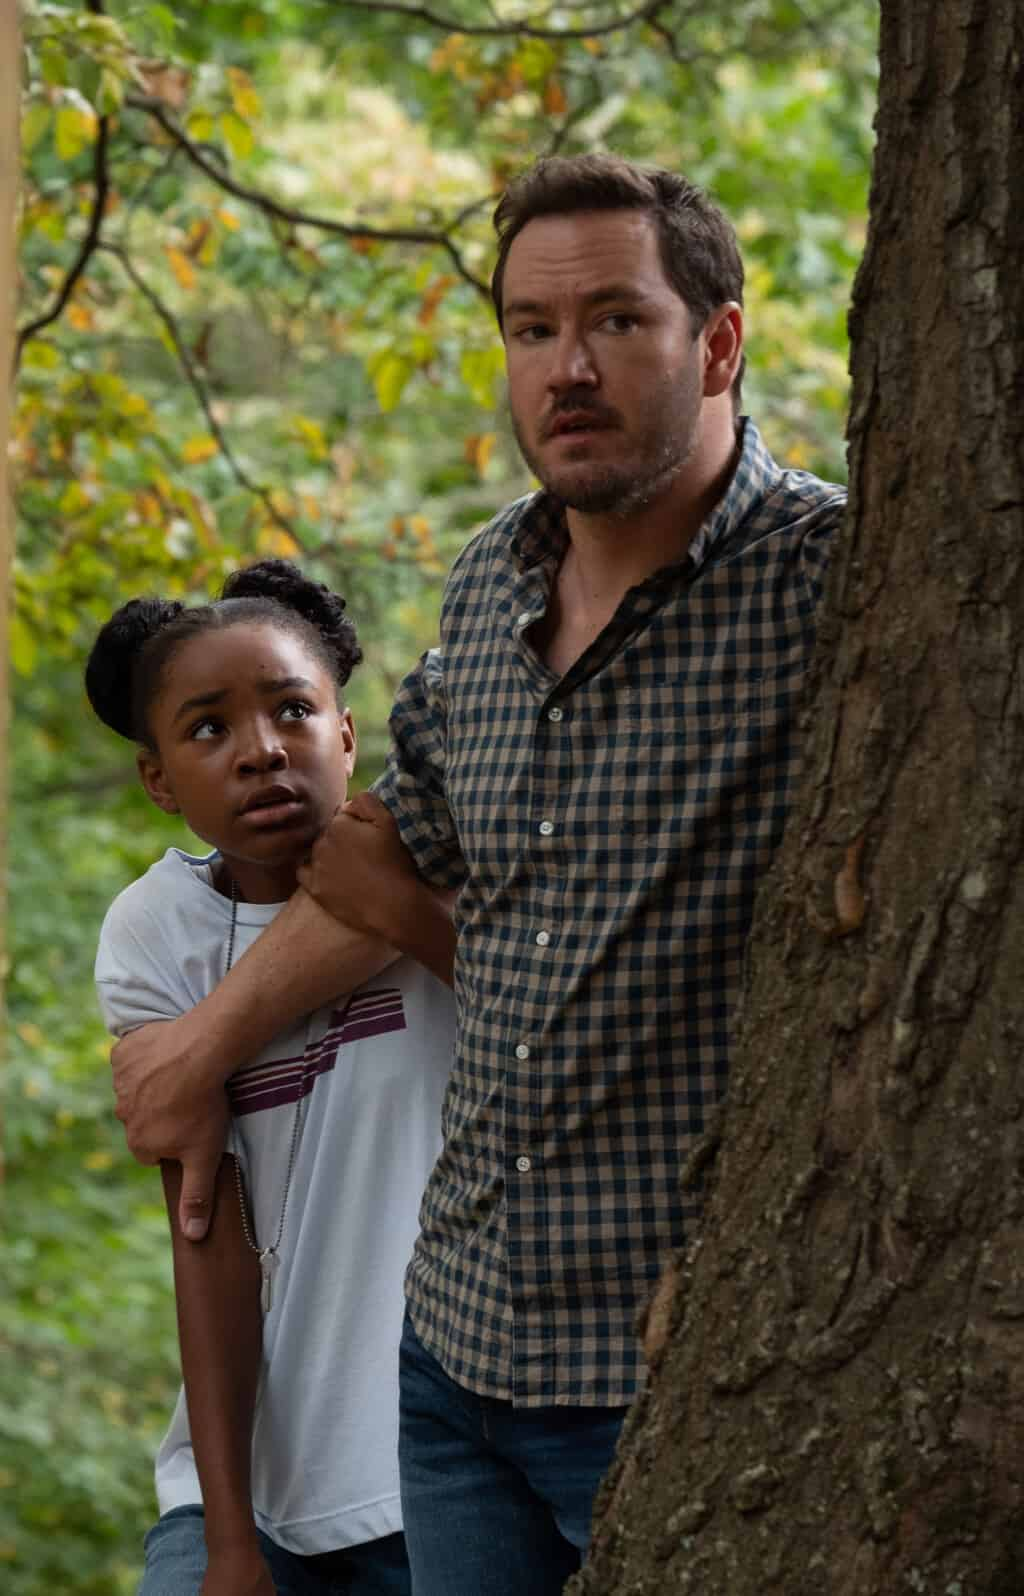 The Passage Review: Whose Blood is That? (Season 1 Episode 4)